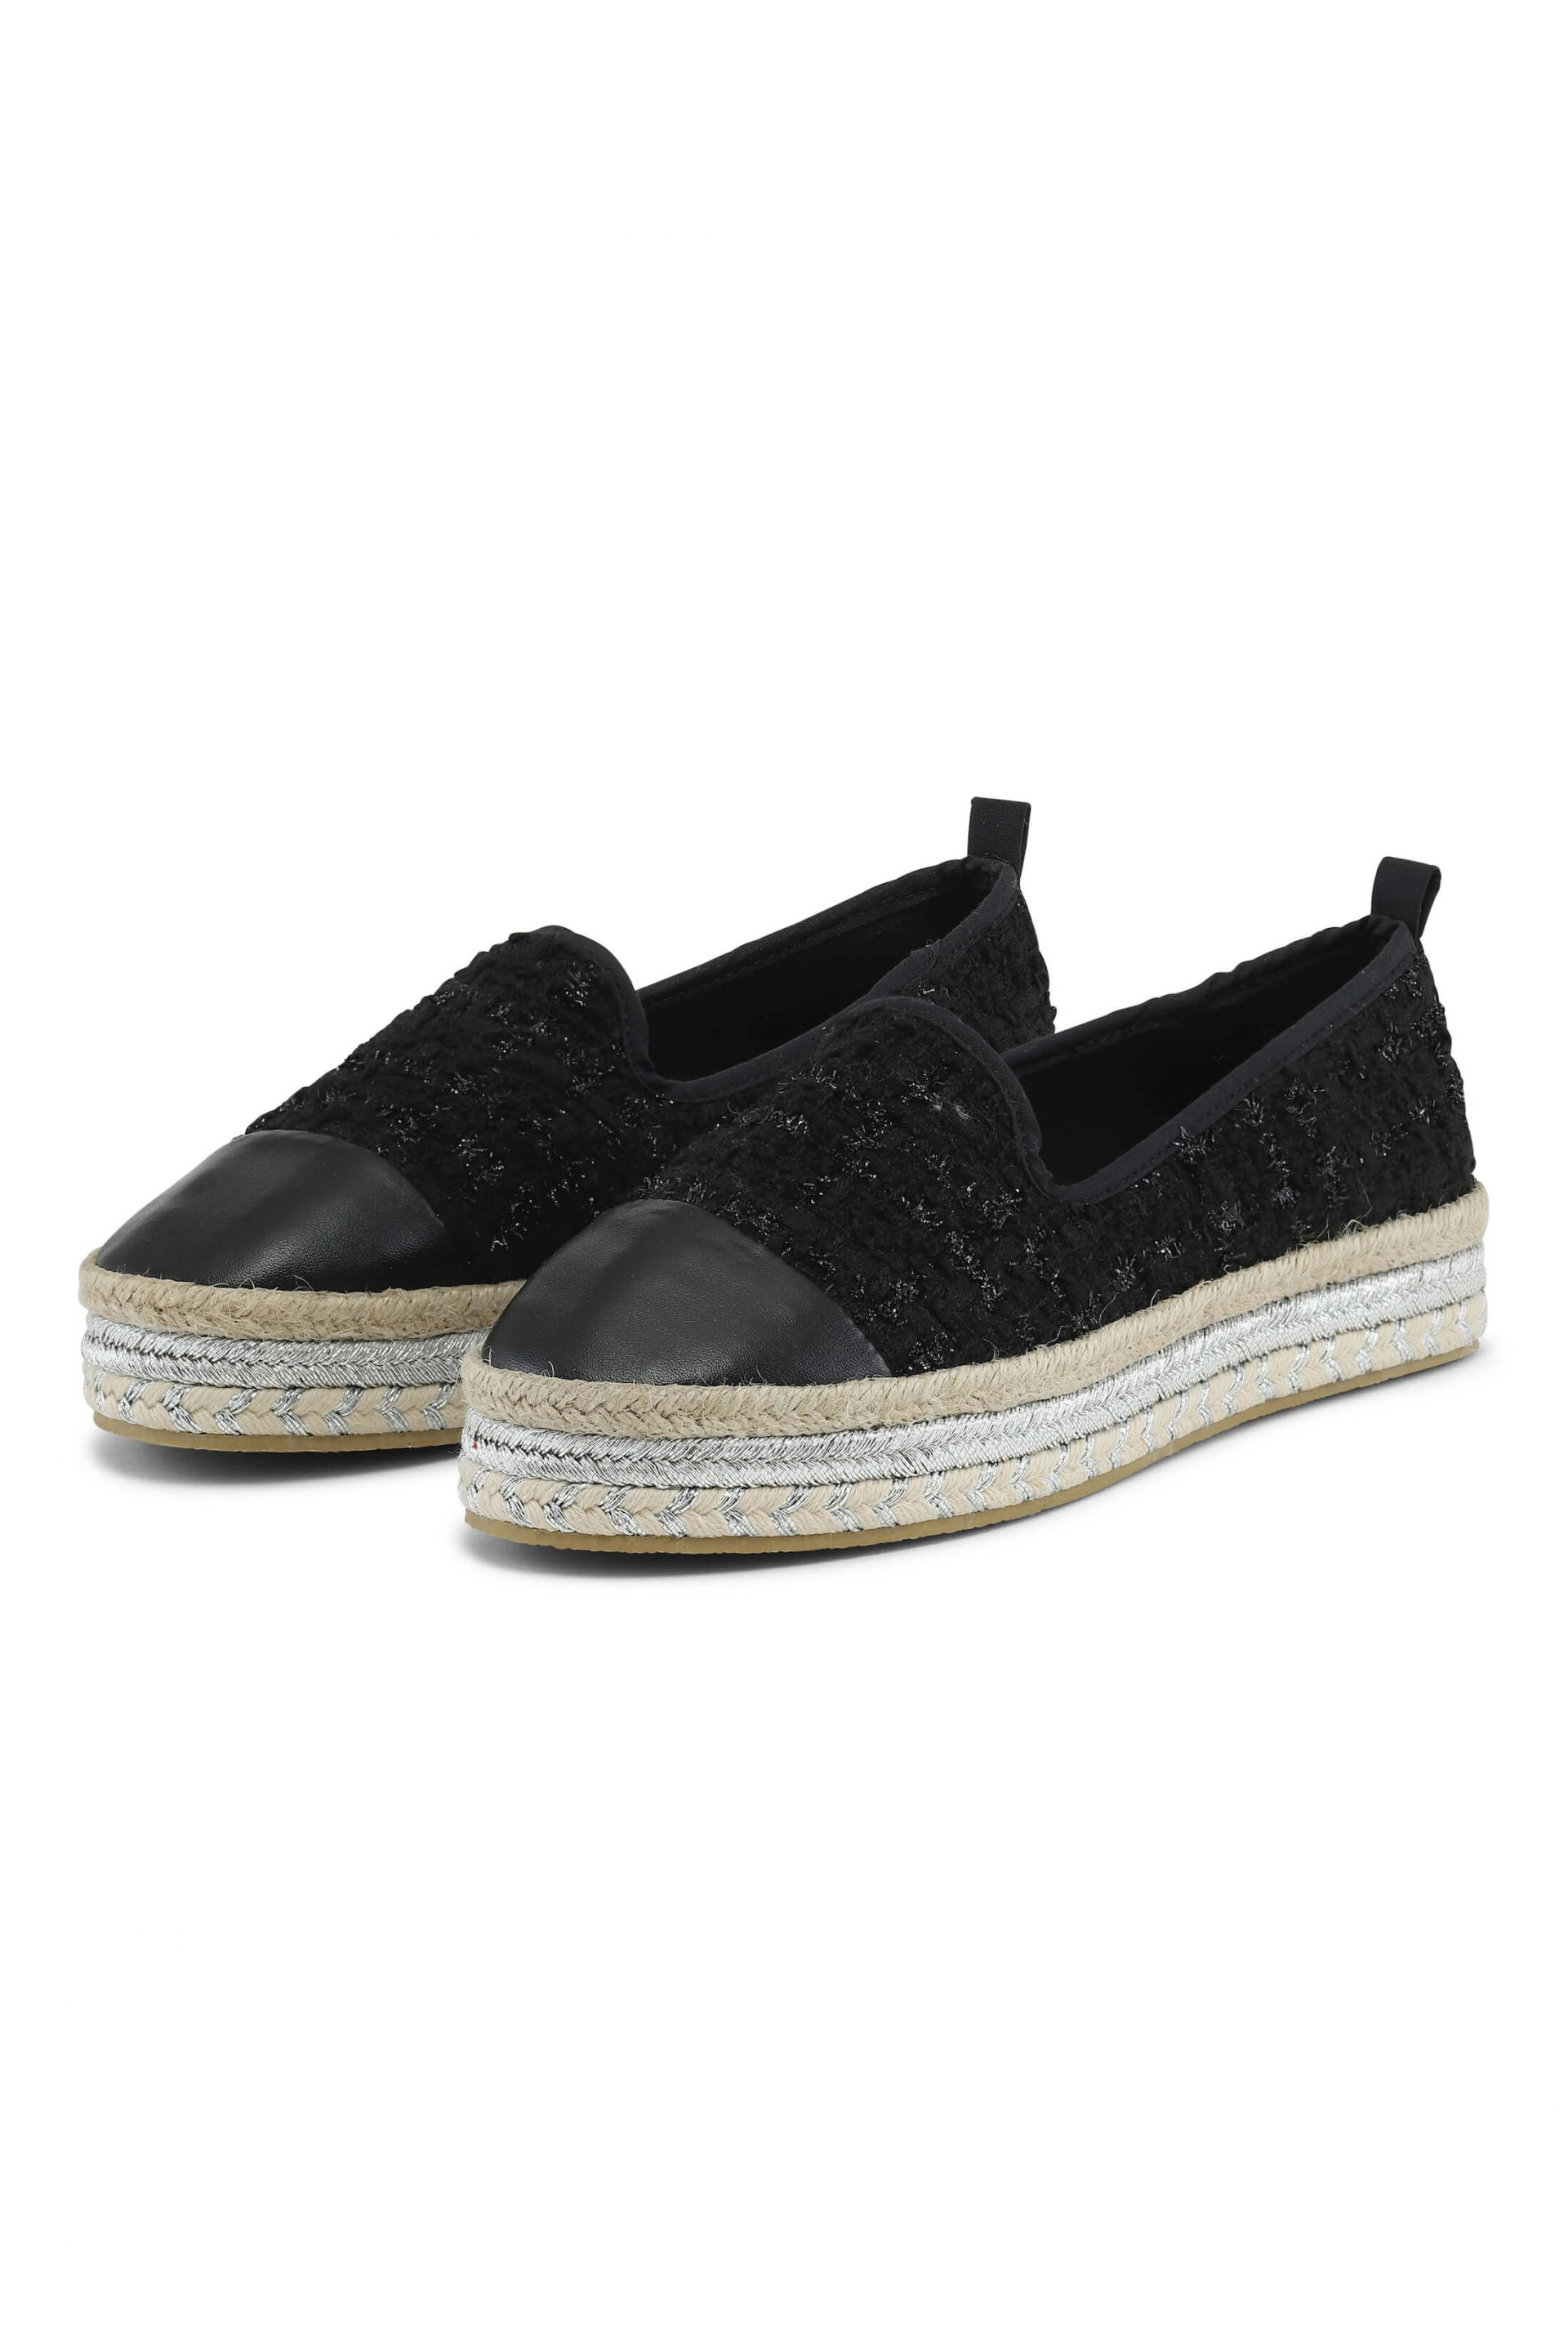 Black quiltet espadrillos with silver details